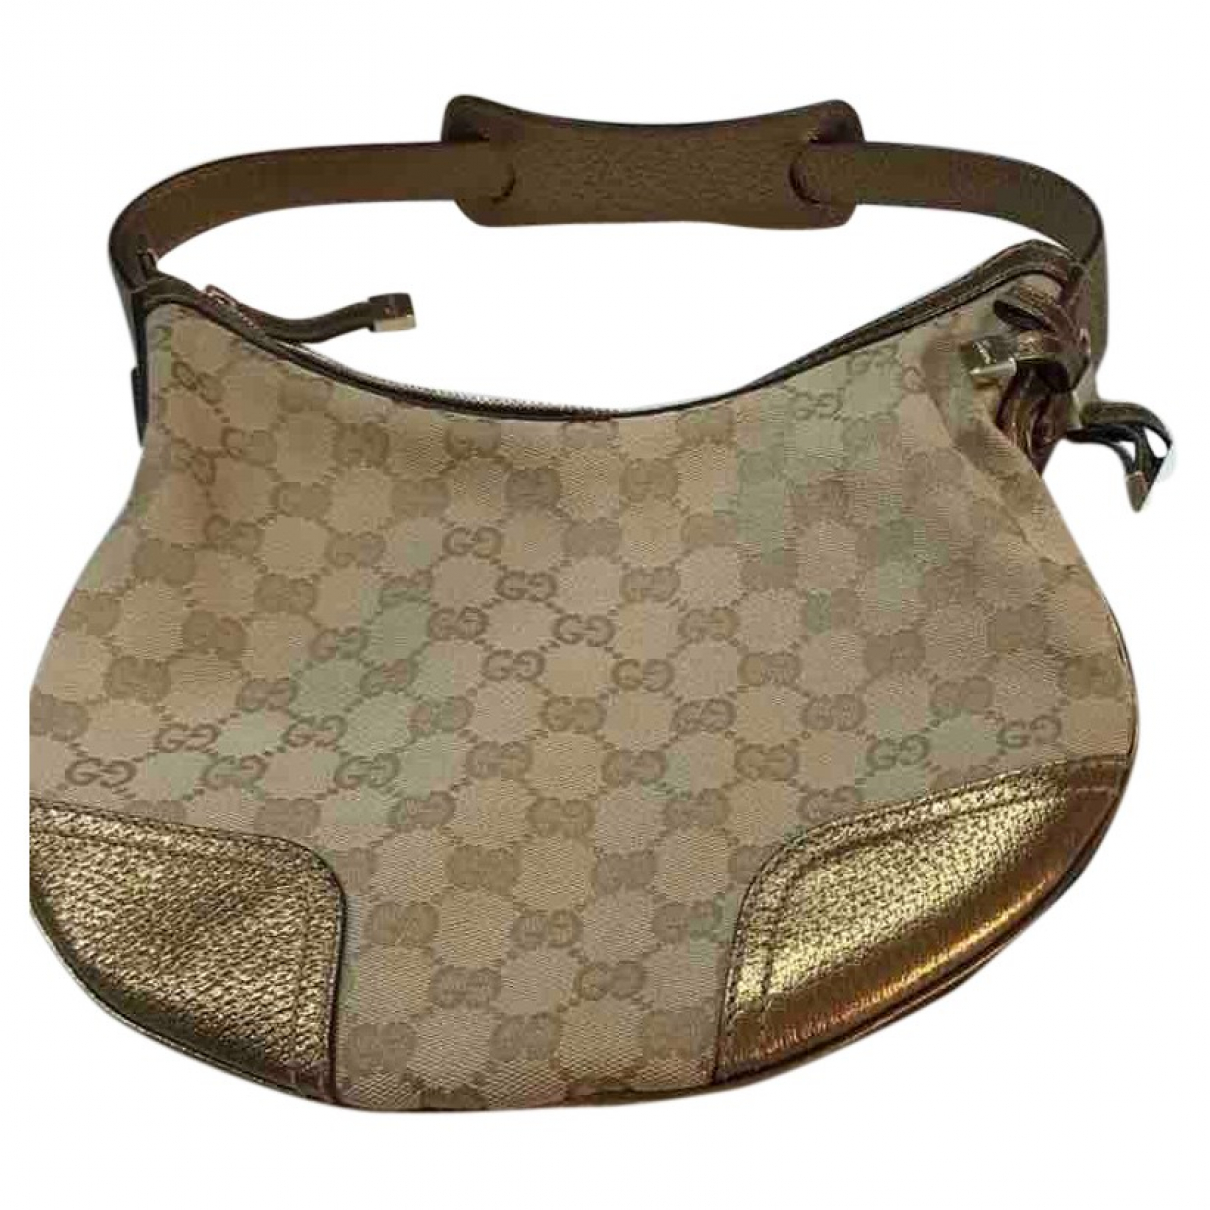 Gucci Guccy minibag Gold Leather handbag for Women N